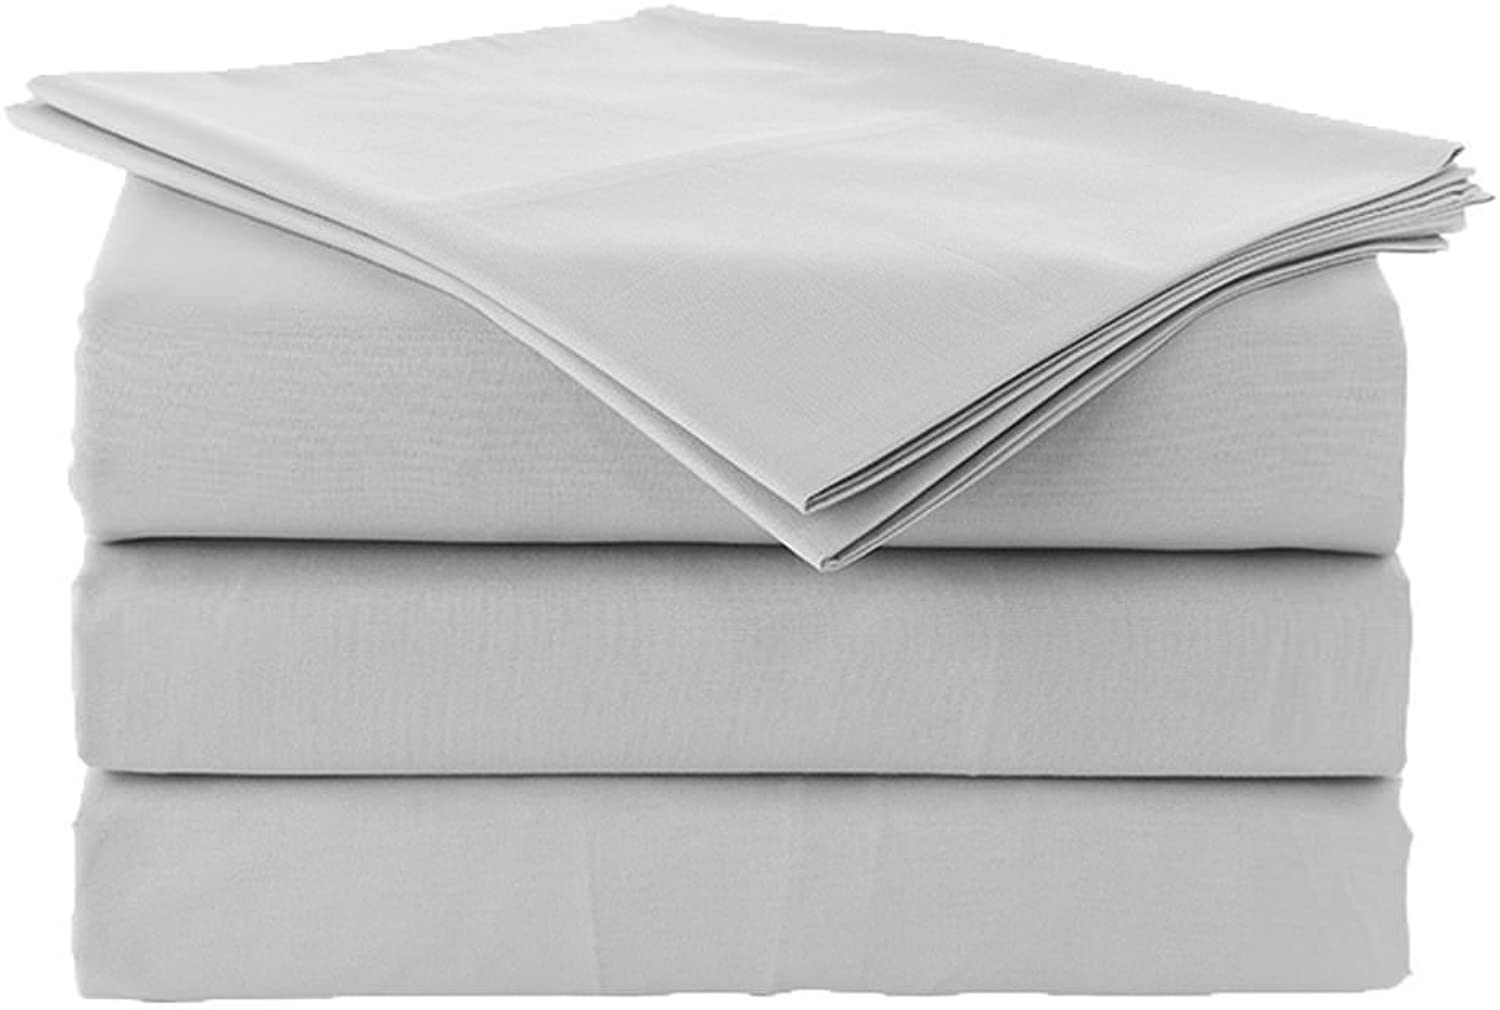 CottonSheets Set California KingSize 100% Cotton 600 ThreadCount Fits 12  to 18'' Inch Deep Pocket Bed Sheets SetLight Grey Solid